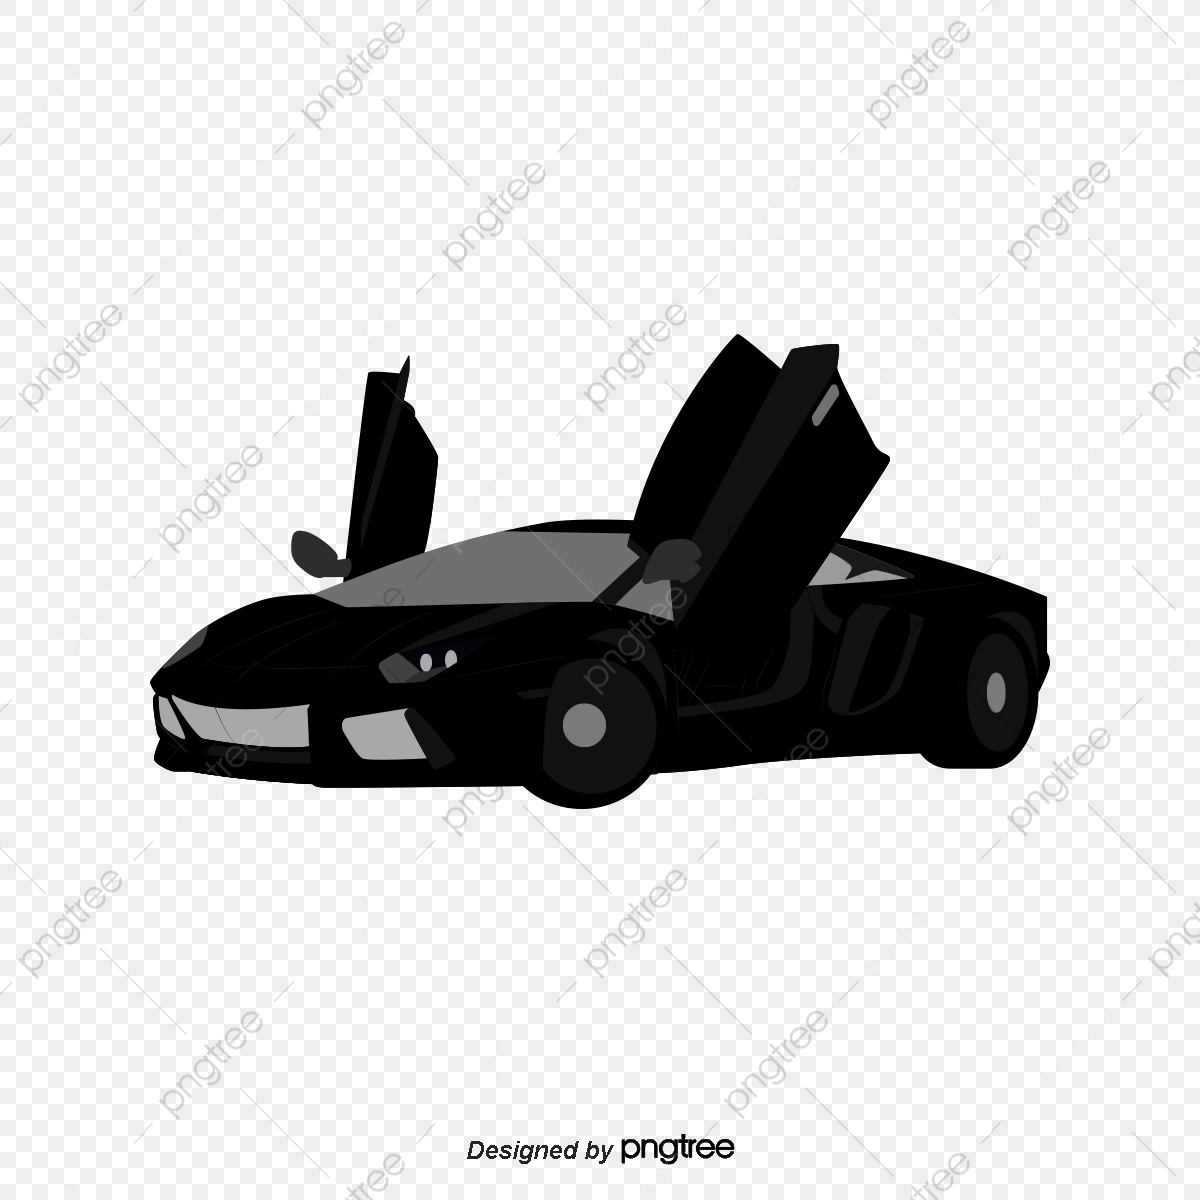 Black Car Clip Art, 谏, Svg, Red PNG Transparent Clipart Image and PSD File  for Free Download